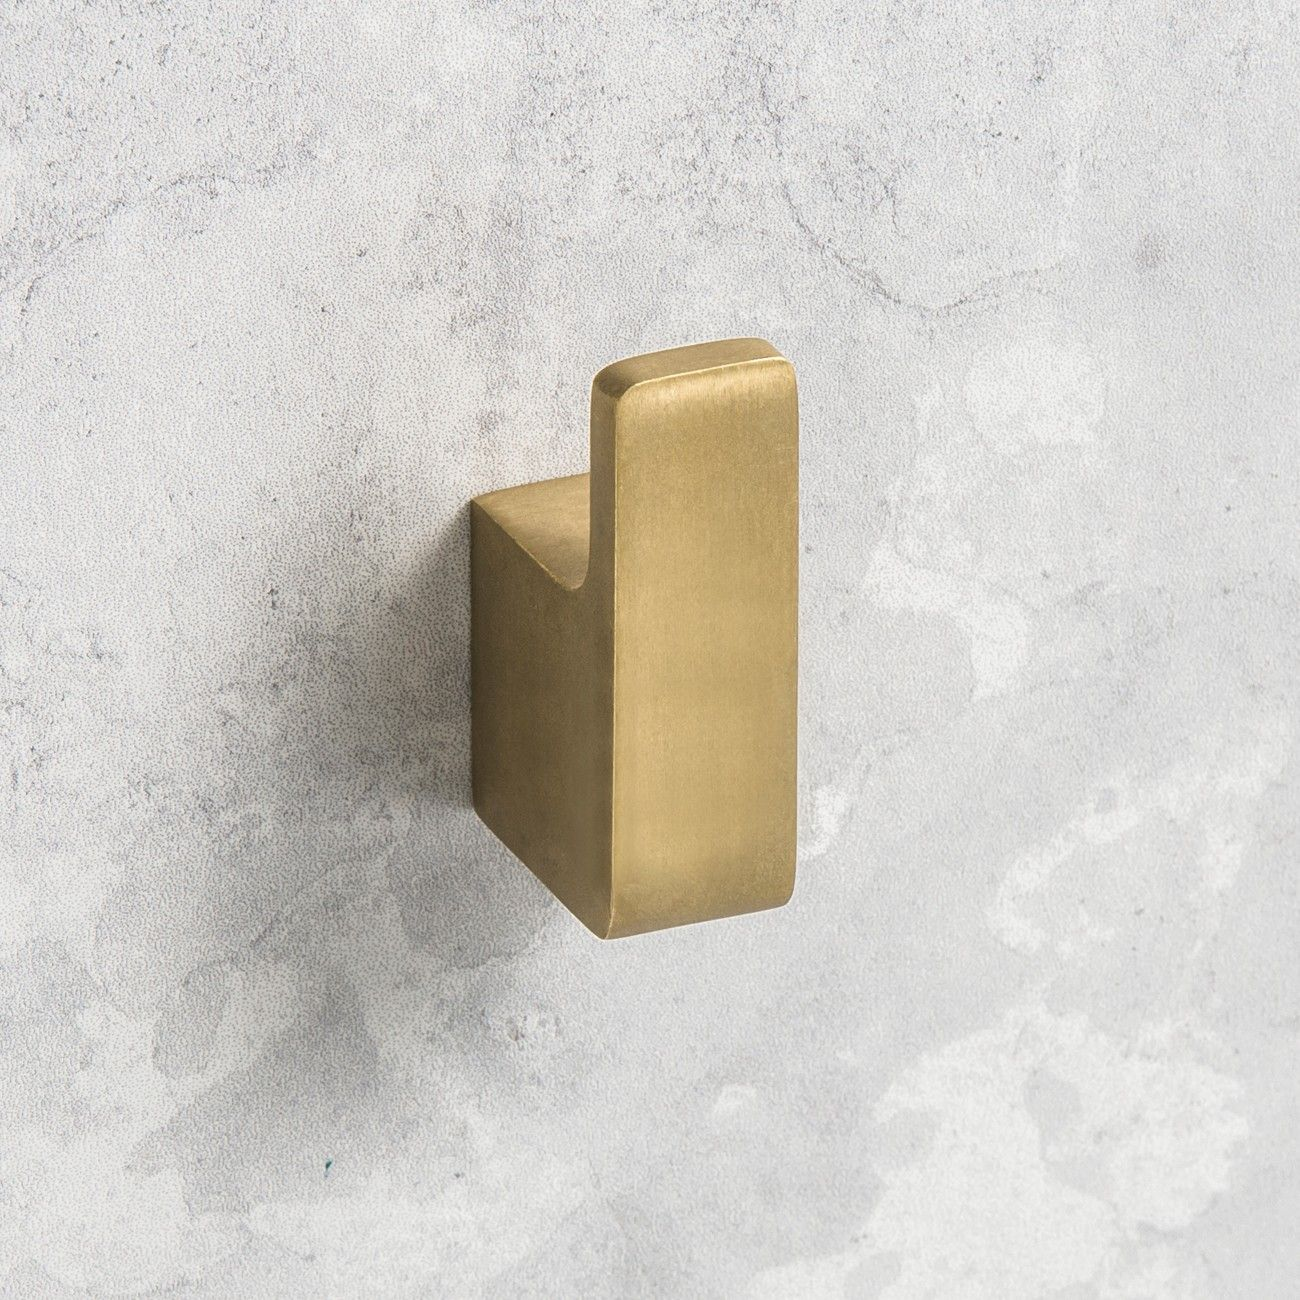 Rogerseller Eon Robe Hook in Natural Elements Burnished Brass. Designed by Rogerseller and made in Australia, the Eon Robe Hook combines crisp square profiles with subtle curves, presenting a minimalistic soft-square outline. Natural Elements - Inspired by Nature. #Rogerseller #RSNaturalElements #BurnishedBrass #Brass #InspiredbyNature #Bathroom #Accessories #Towel #Robe